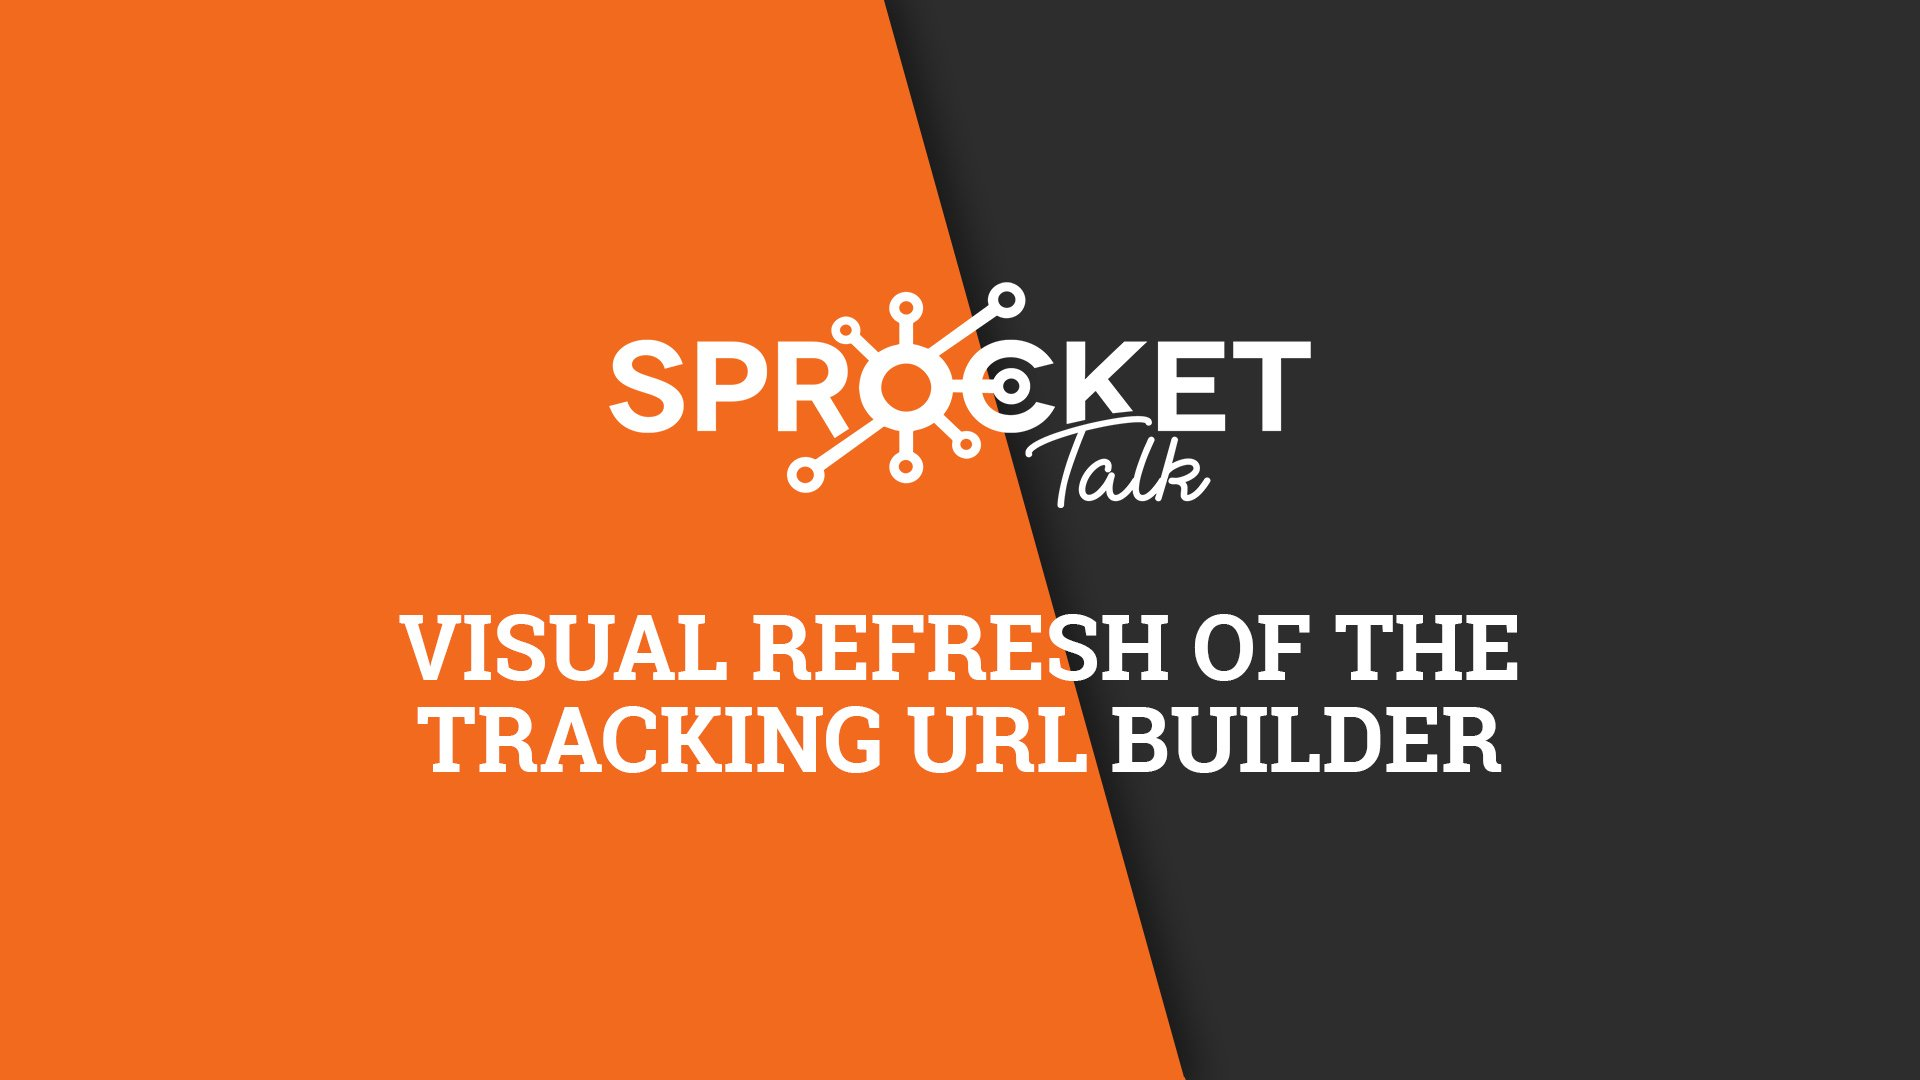 Visual Refresh of the Tracking URL Builder